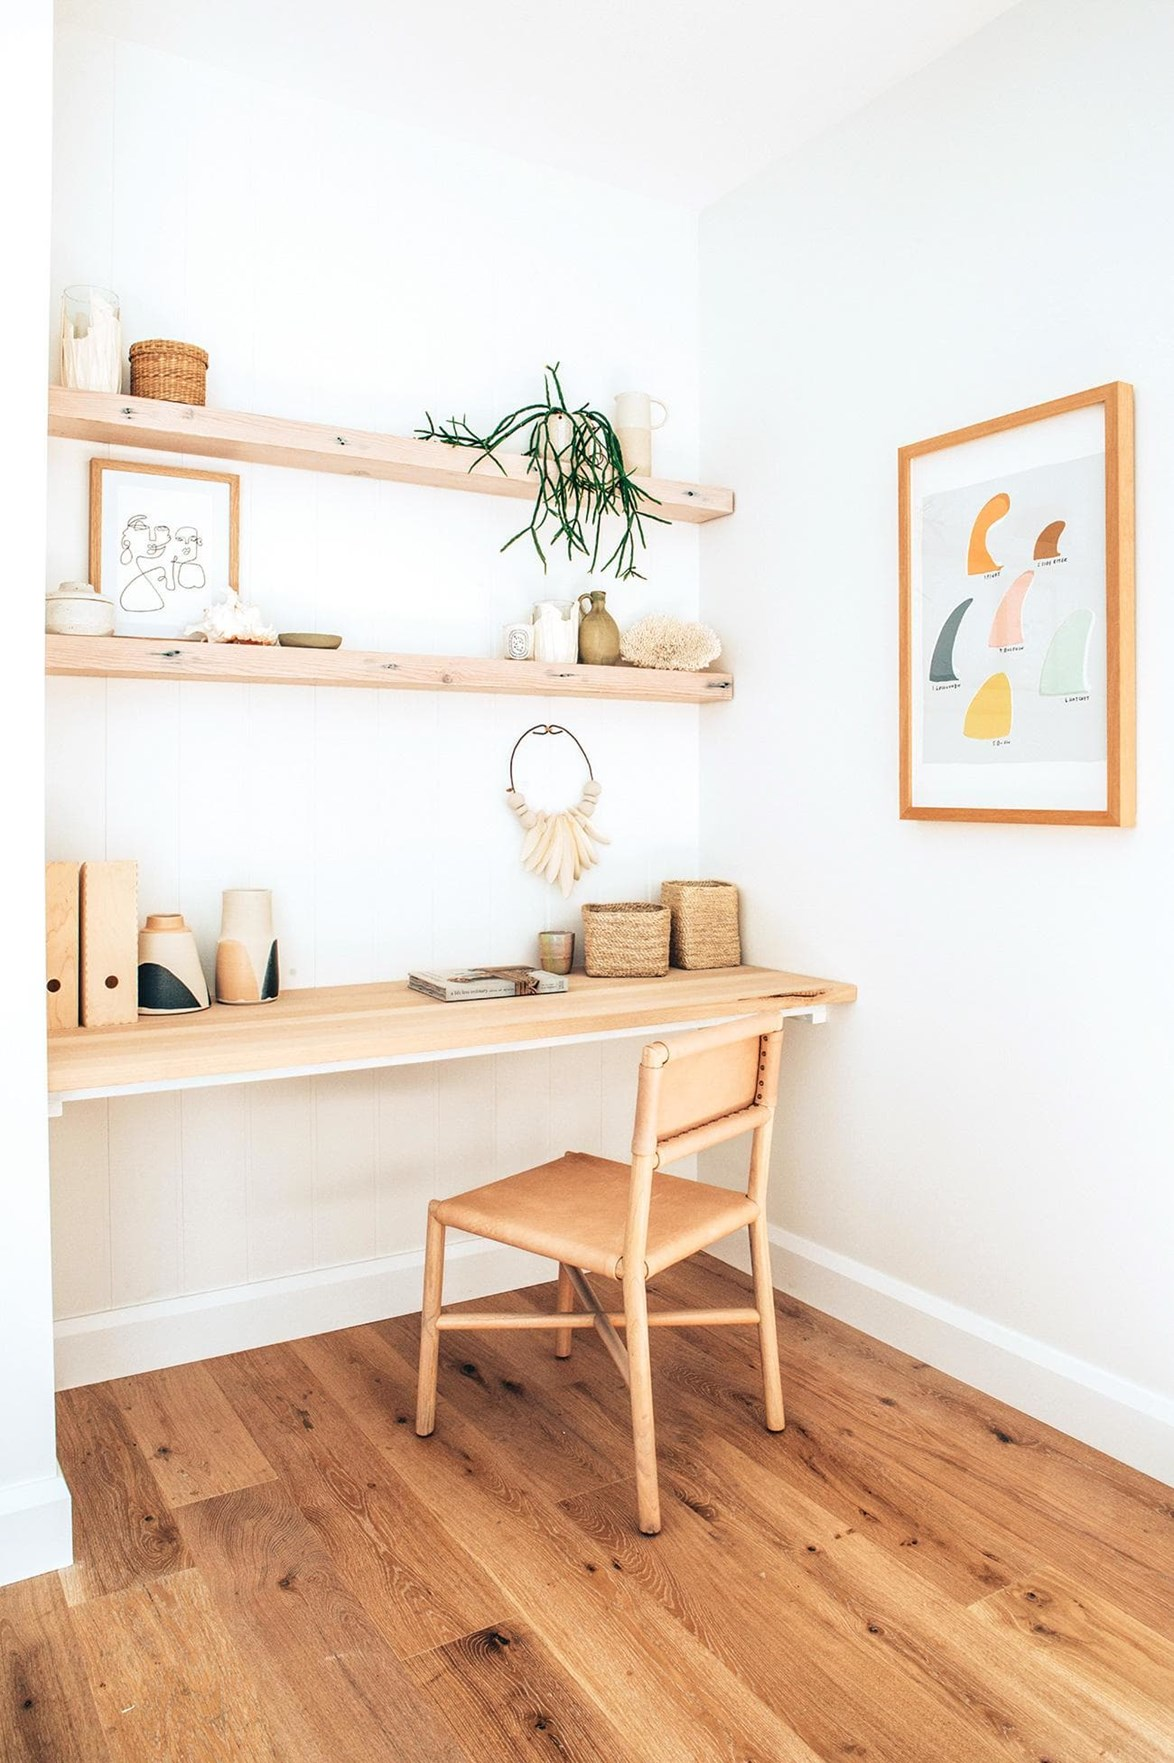 A combination of stylish storage and decorative objects keep Kyal and Kara's home office looking chic and cohesive.